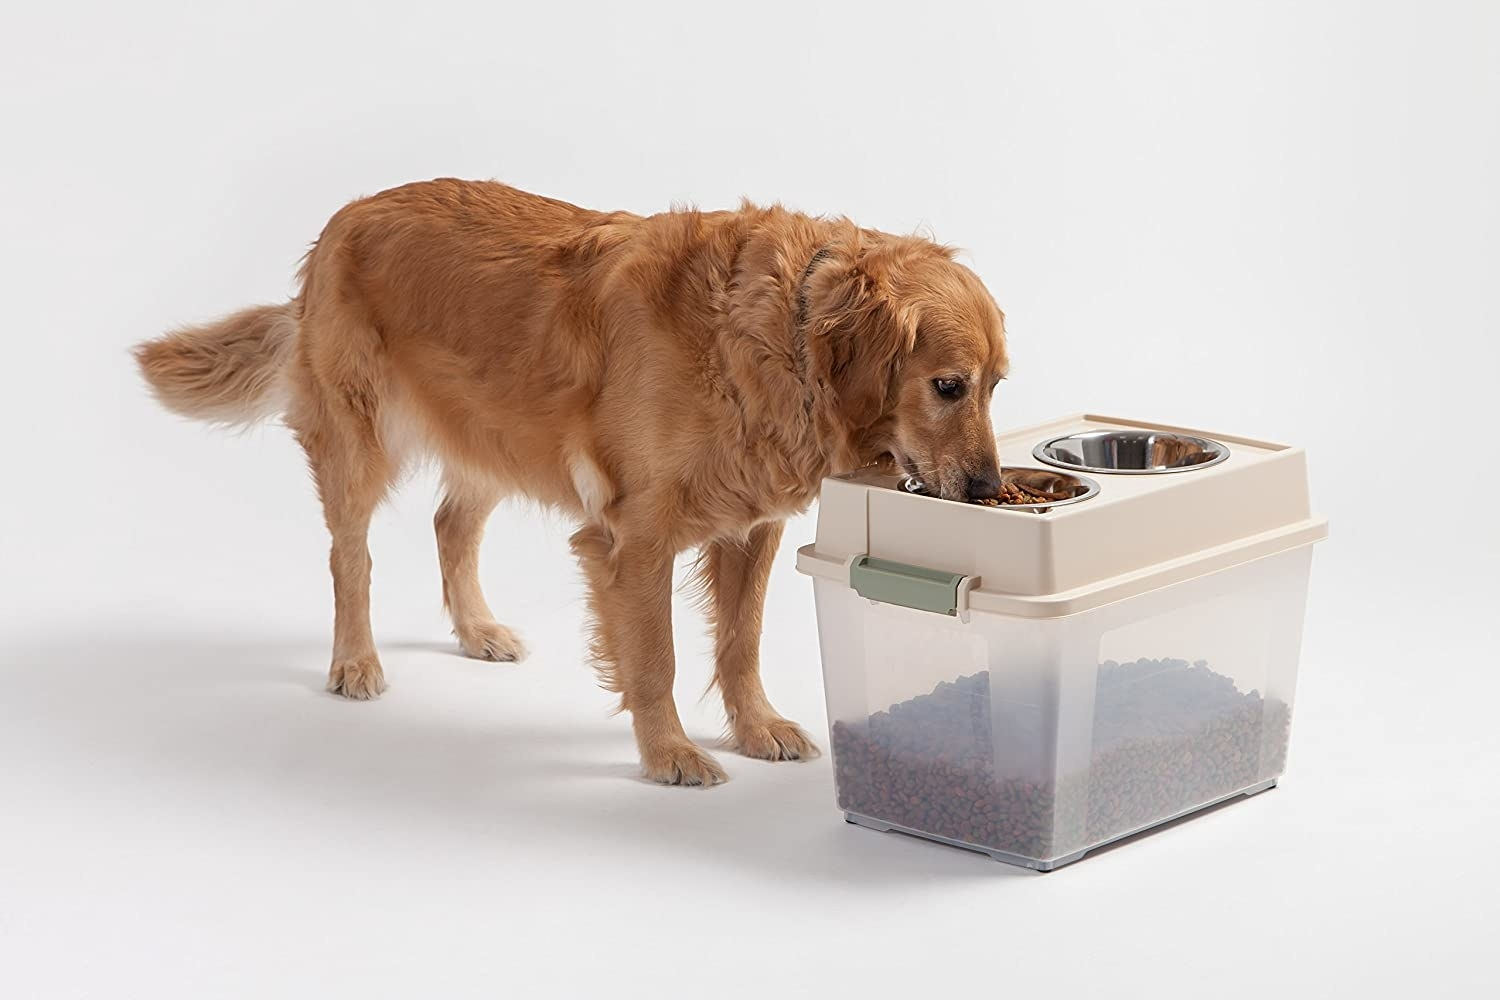 Dog eating out of the two-bowl lid with the large storage bin of dry food attached as the bottom